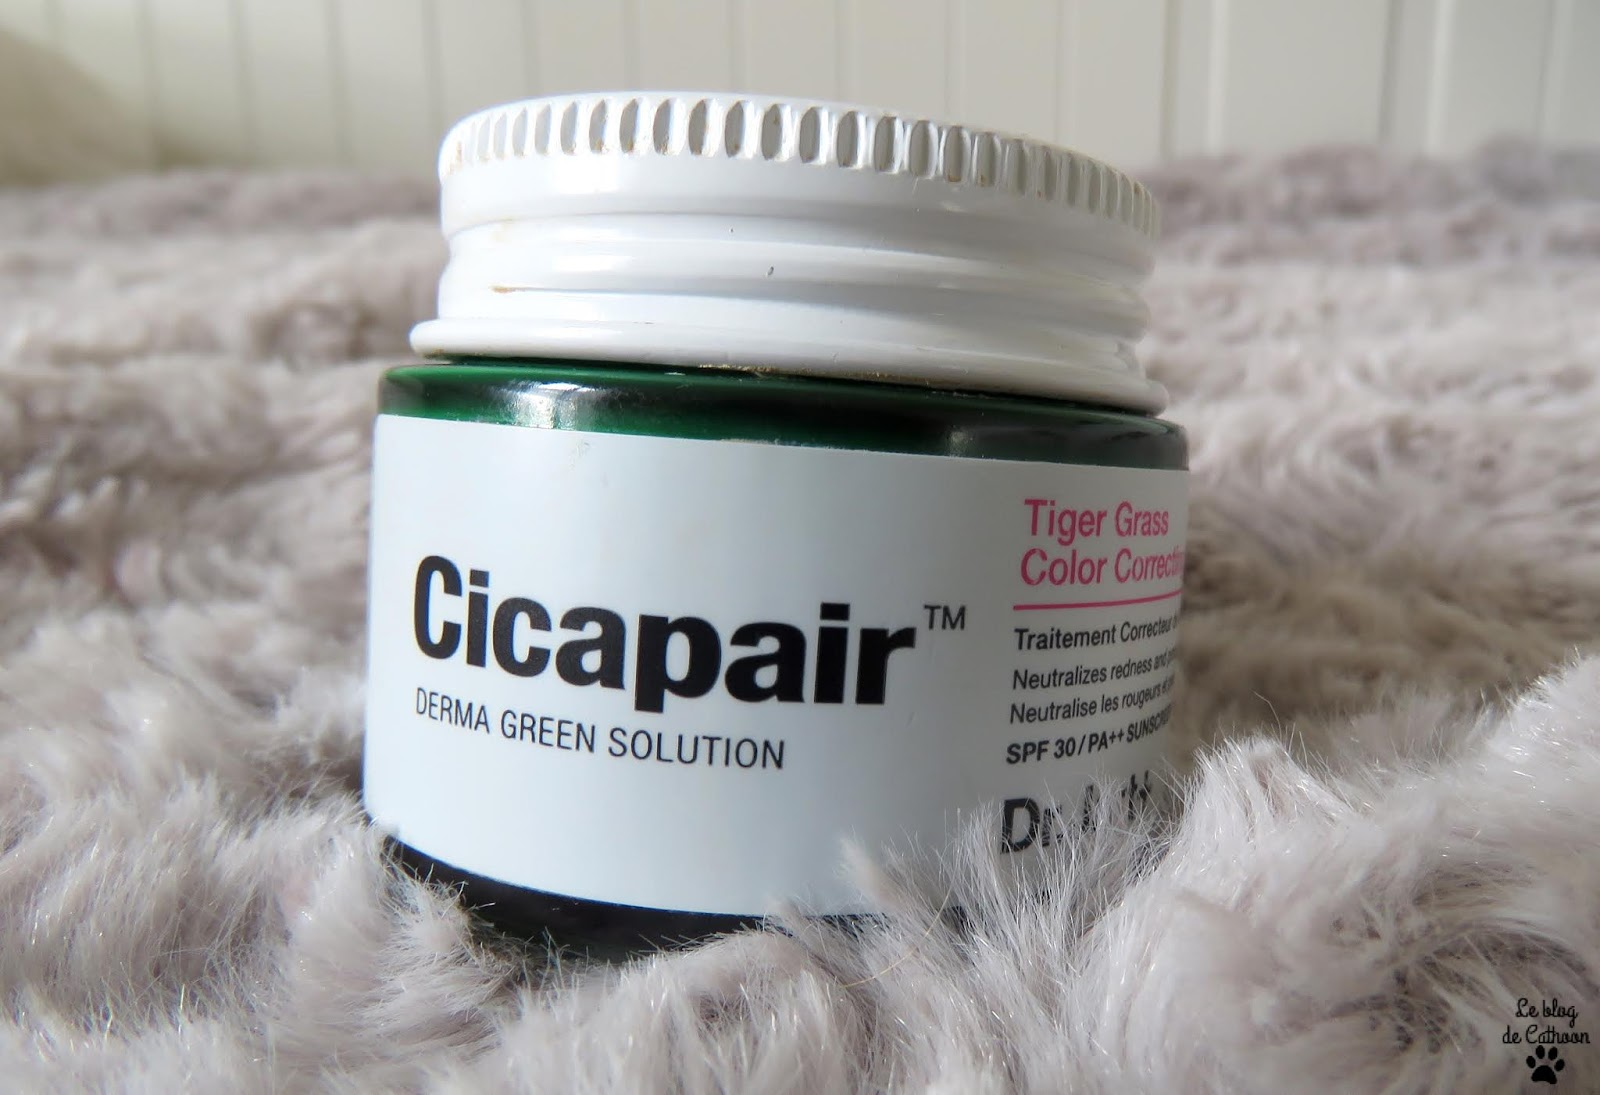 Cicapair - Tiger Grass Color Correcting Treatment - Dr.Jart+